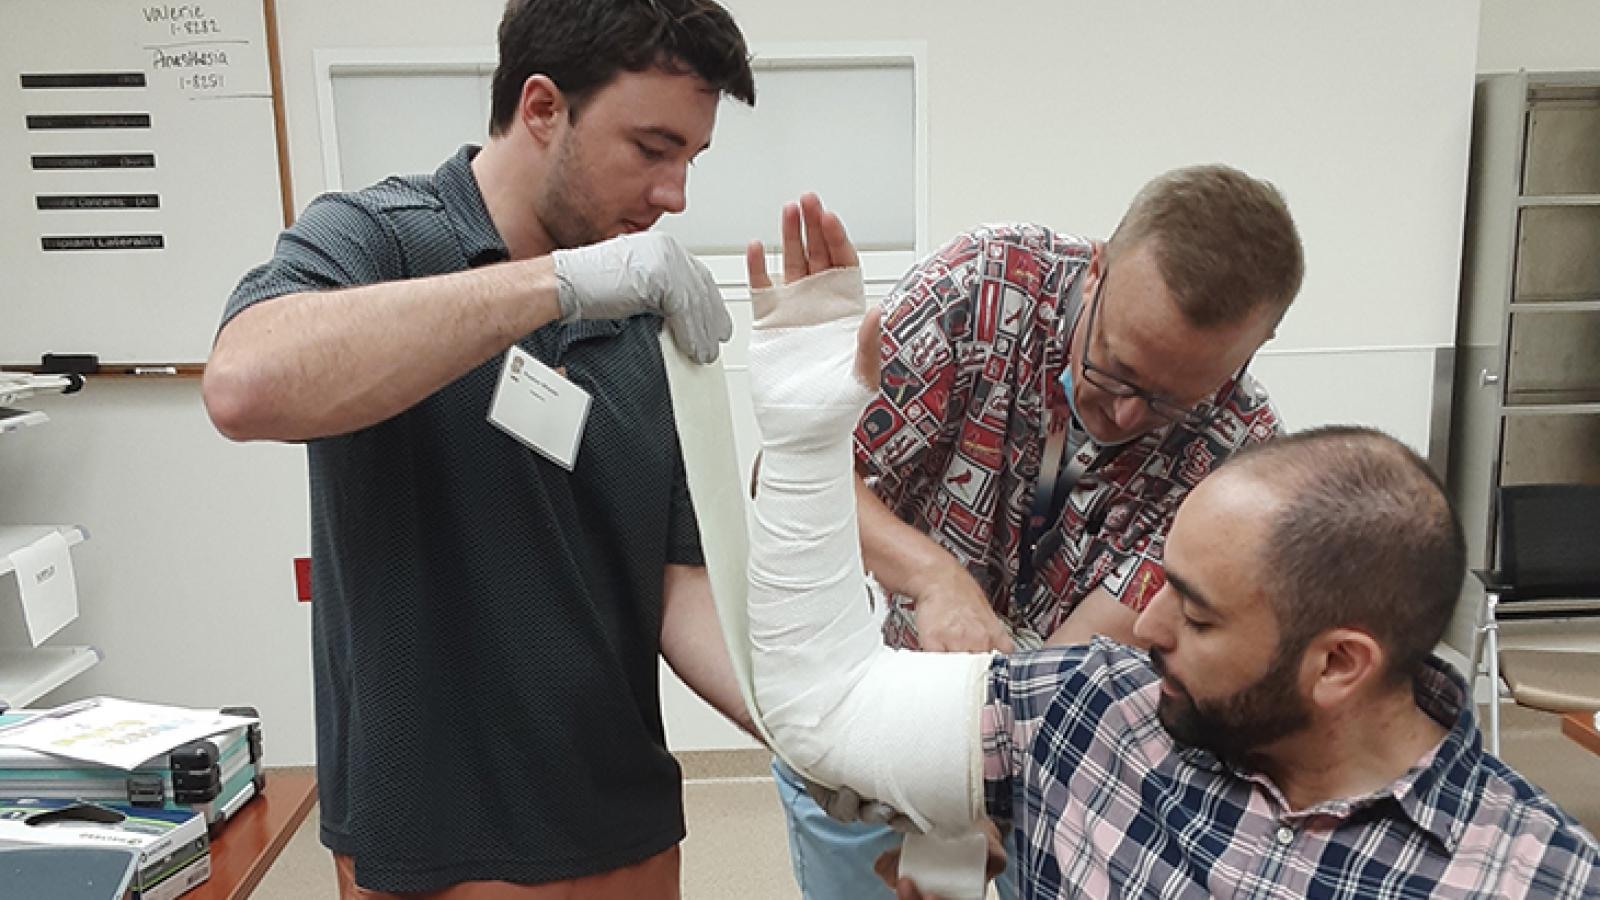 Casting for fractures of limbs simulation